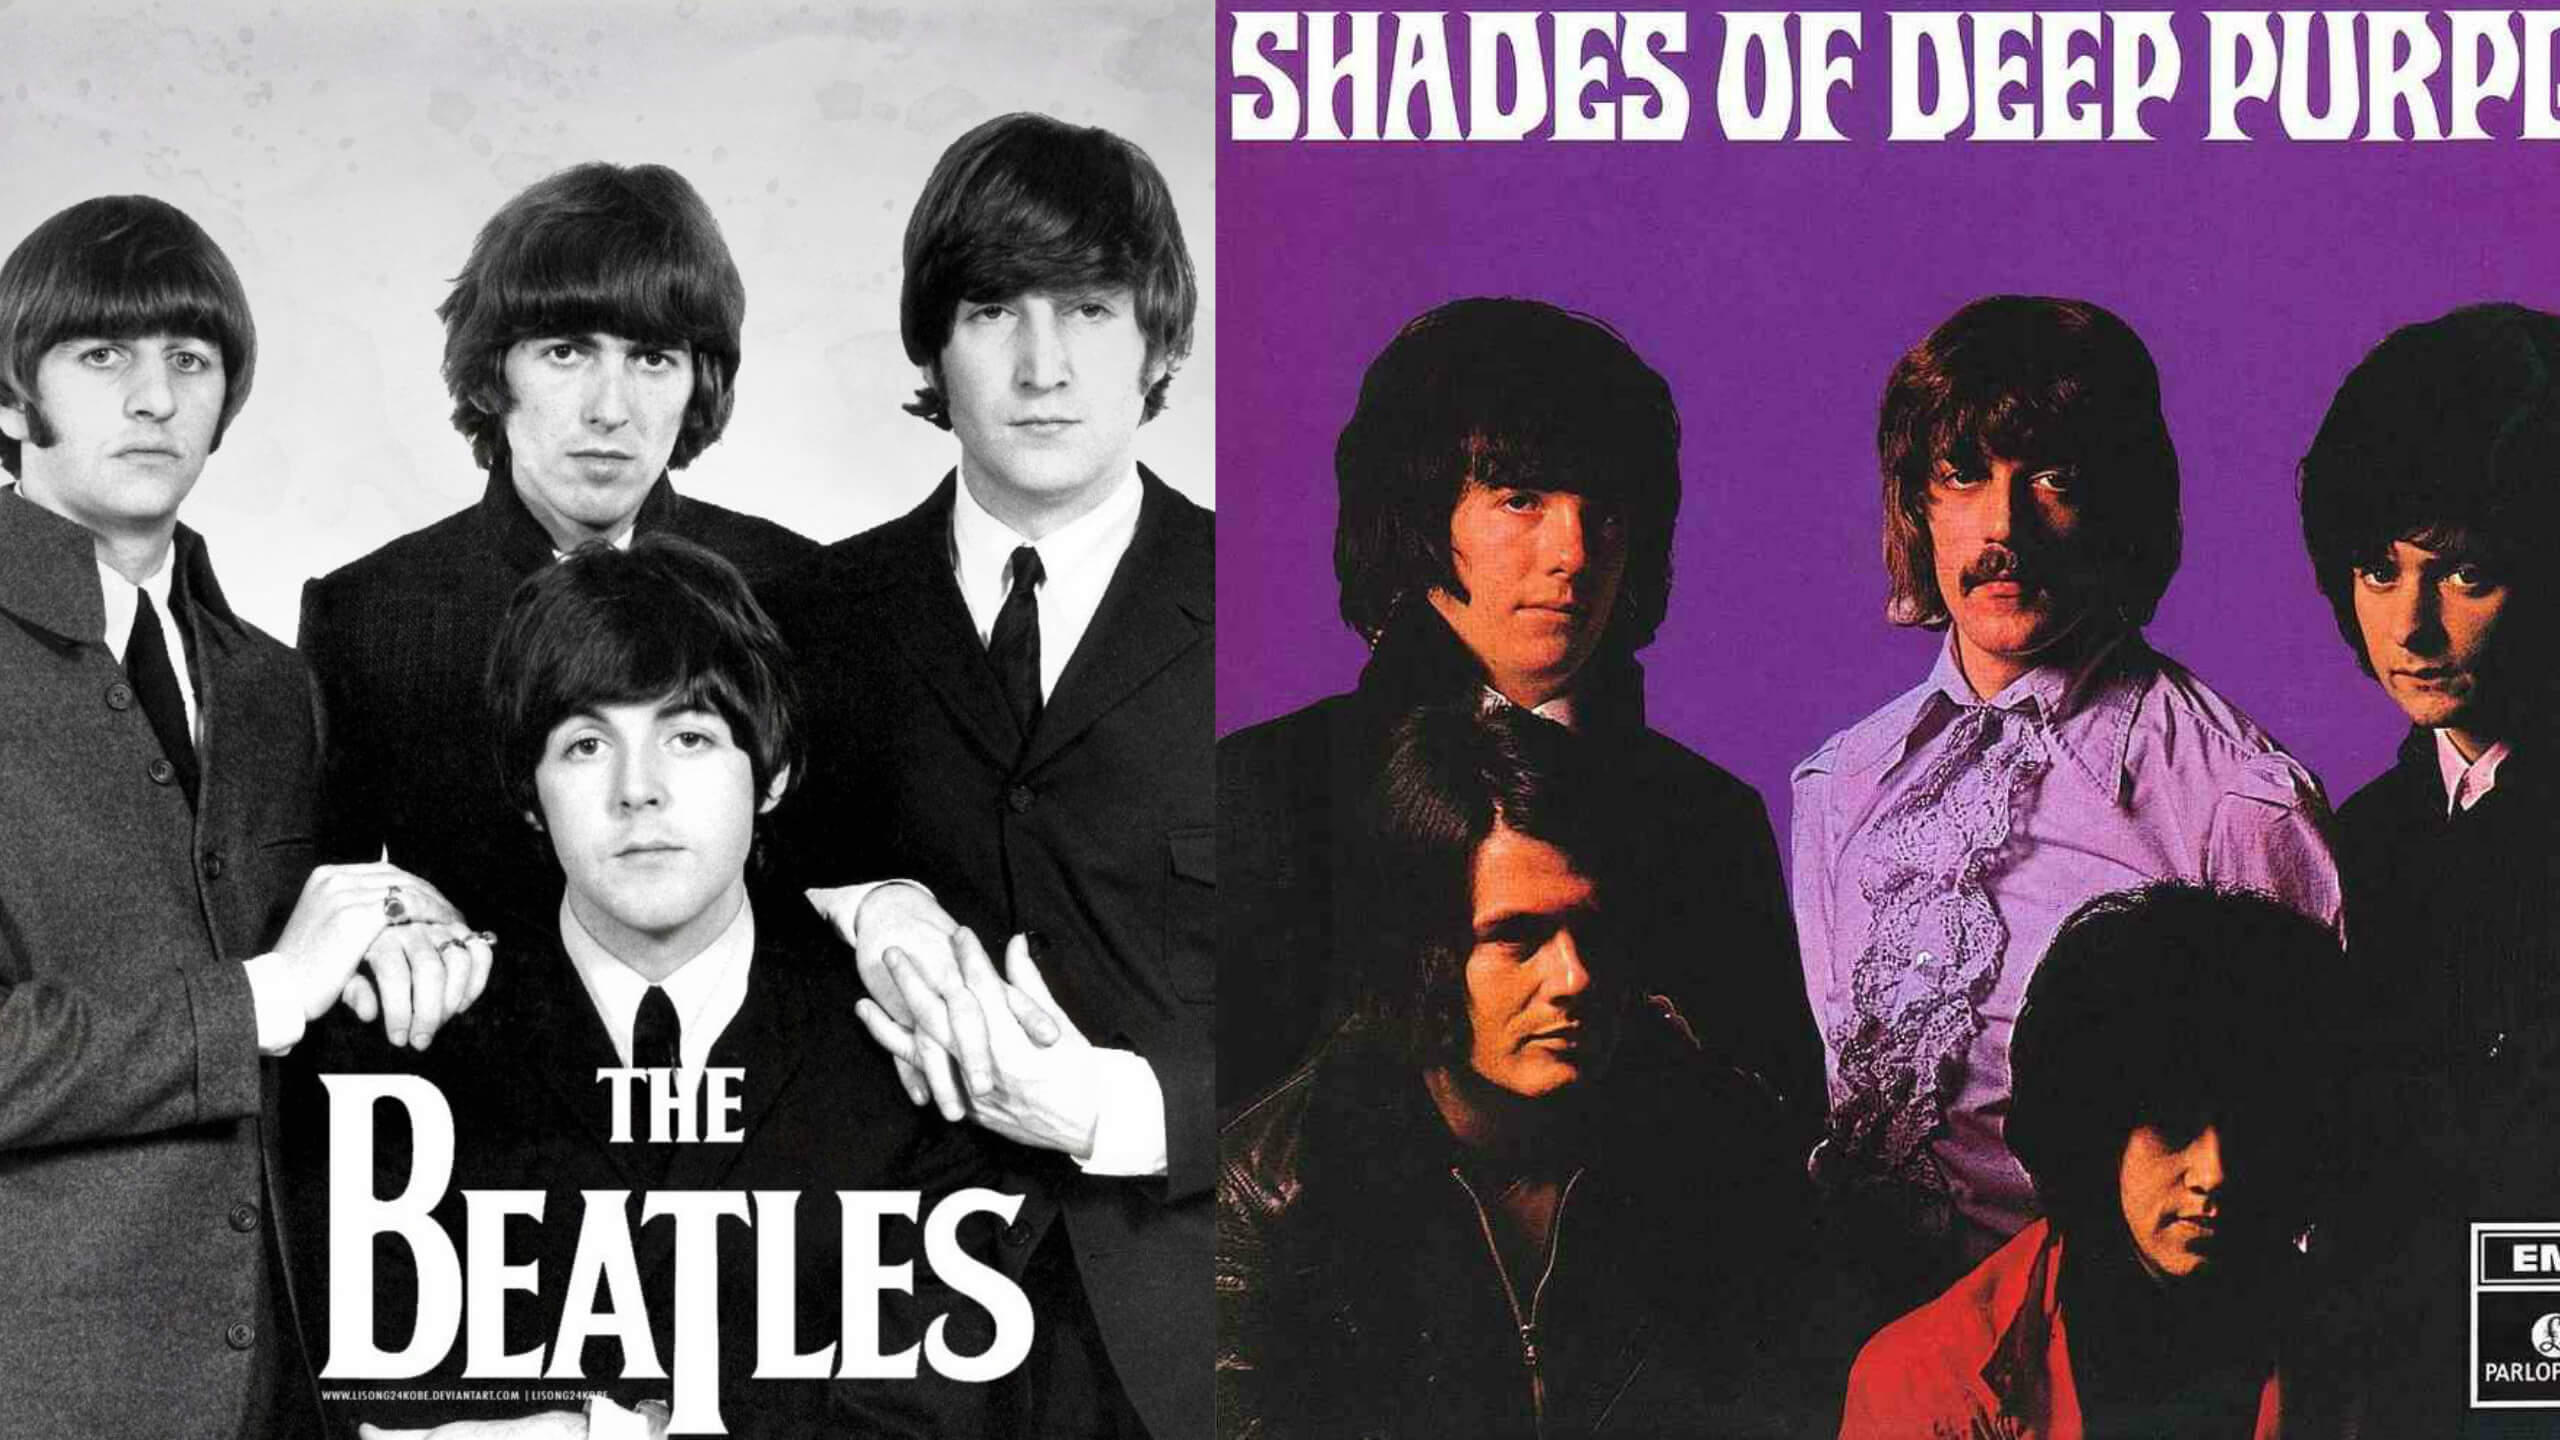 The Beatles are the biggest band of the history of rock and roll, that is indisputable, their influence on this genre is something out of this world. A great example of their importance is the number of great bands they have influenced.And many of those bands paid tribute to them and Deep Purple was on that list.